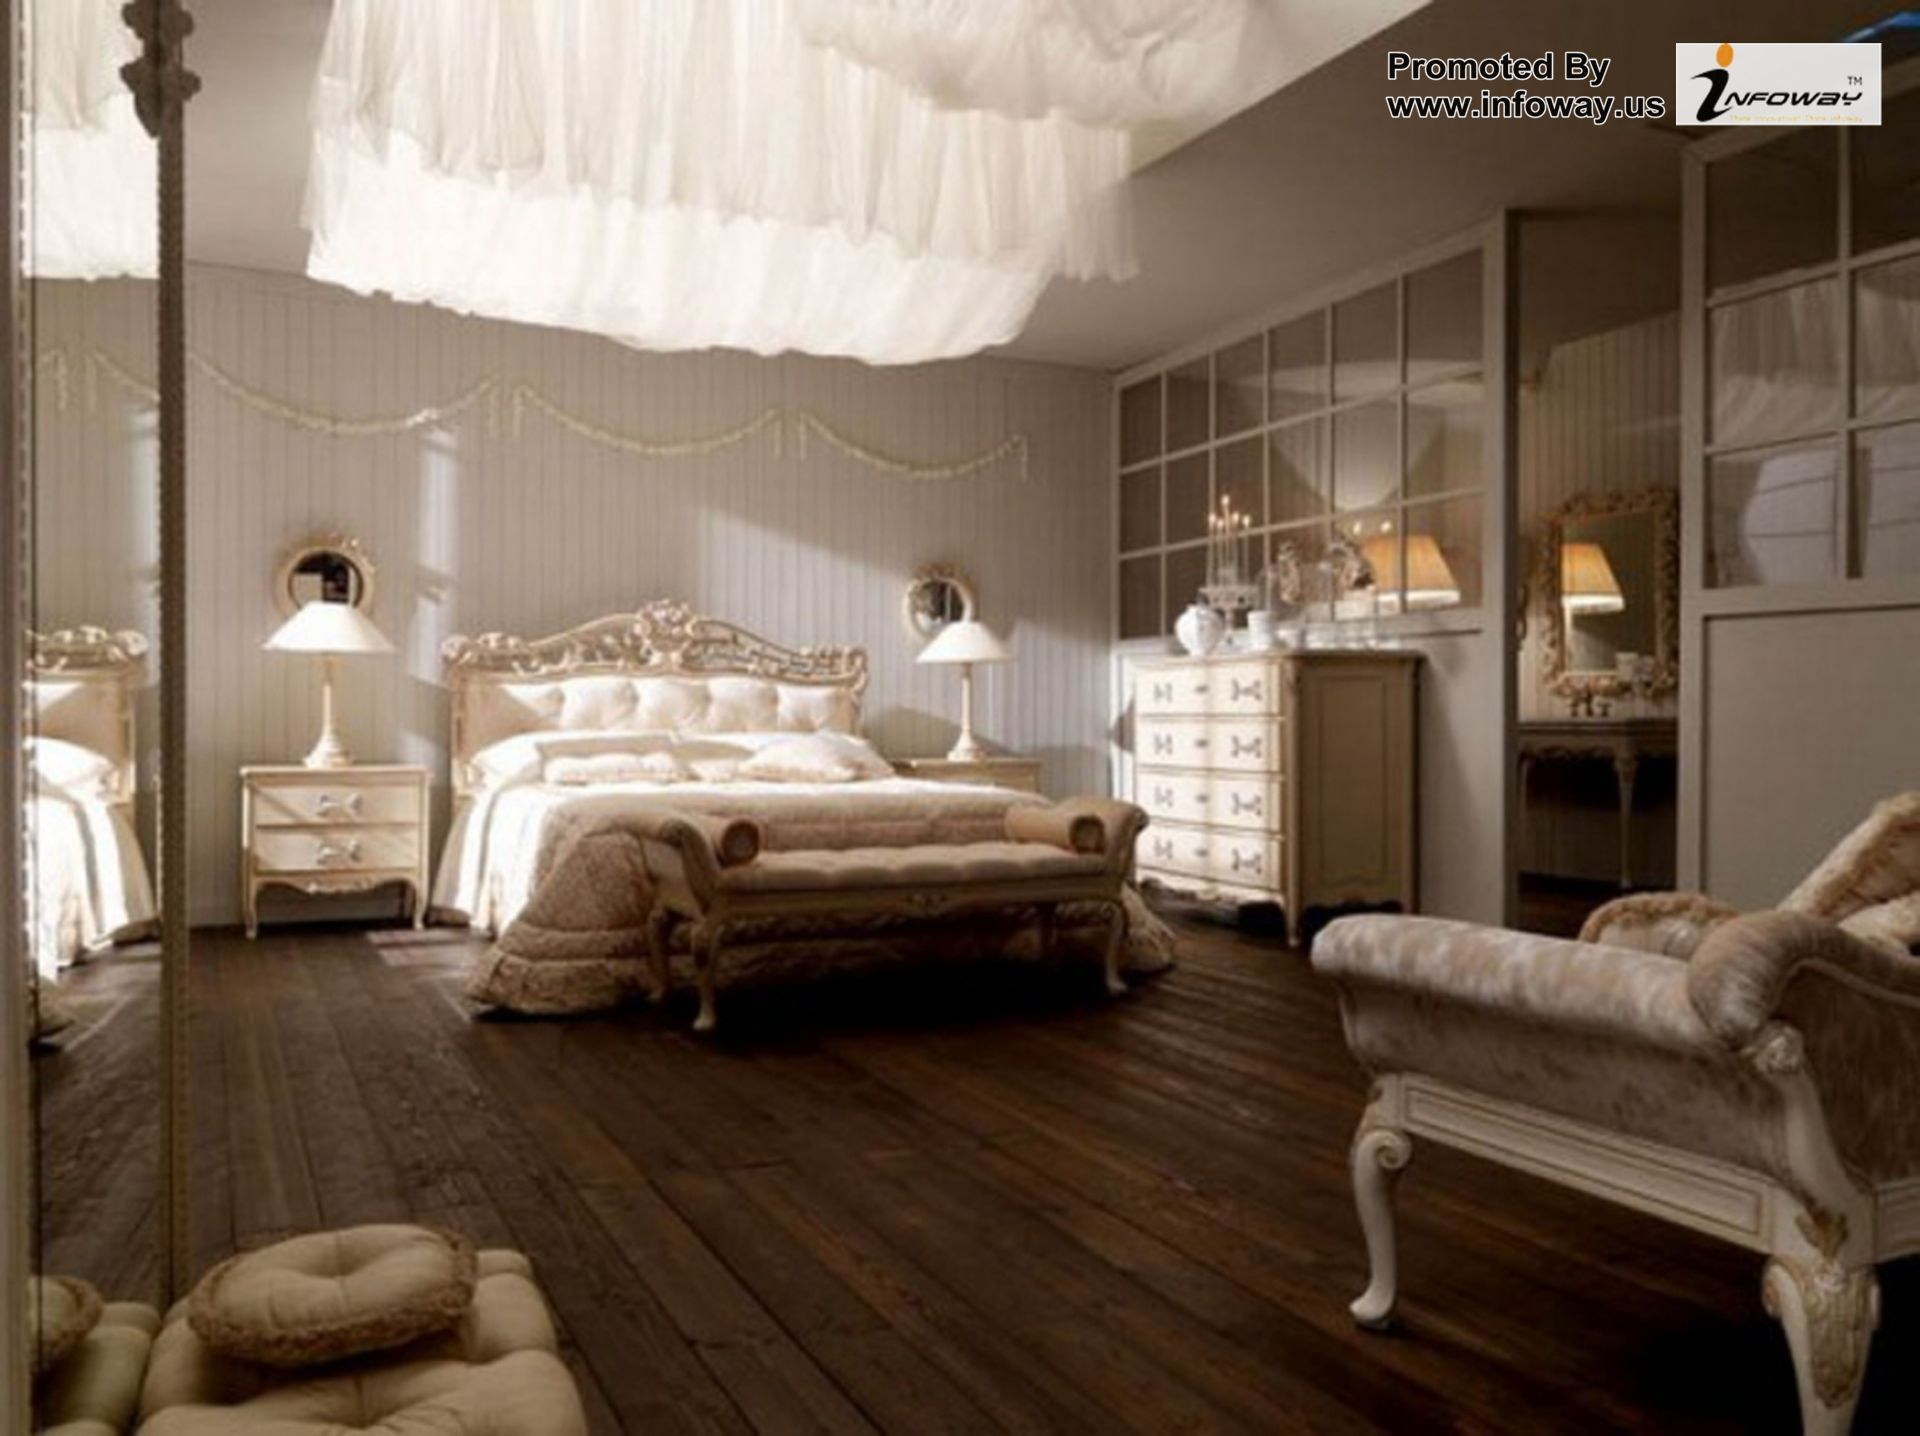 normal bedroom designs. Luxury And Italian Goes Hand In Hand, Florence Based Normal Projects Are The Masters Of Classic Bedroom Designs That Will Make Your Jaw Drop.